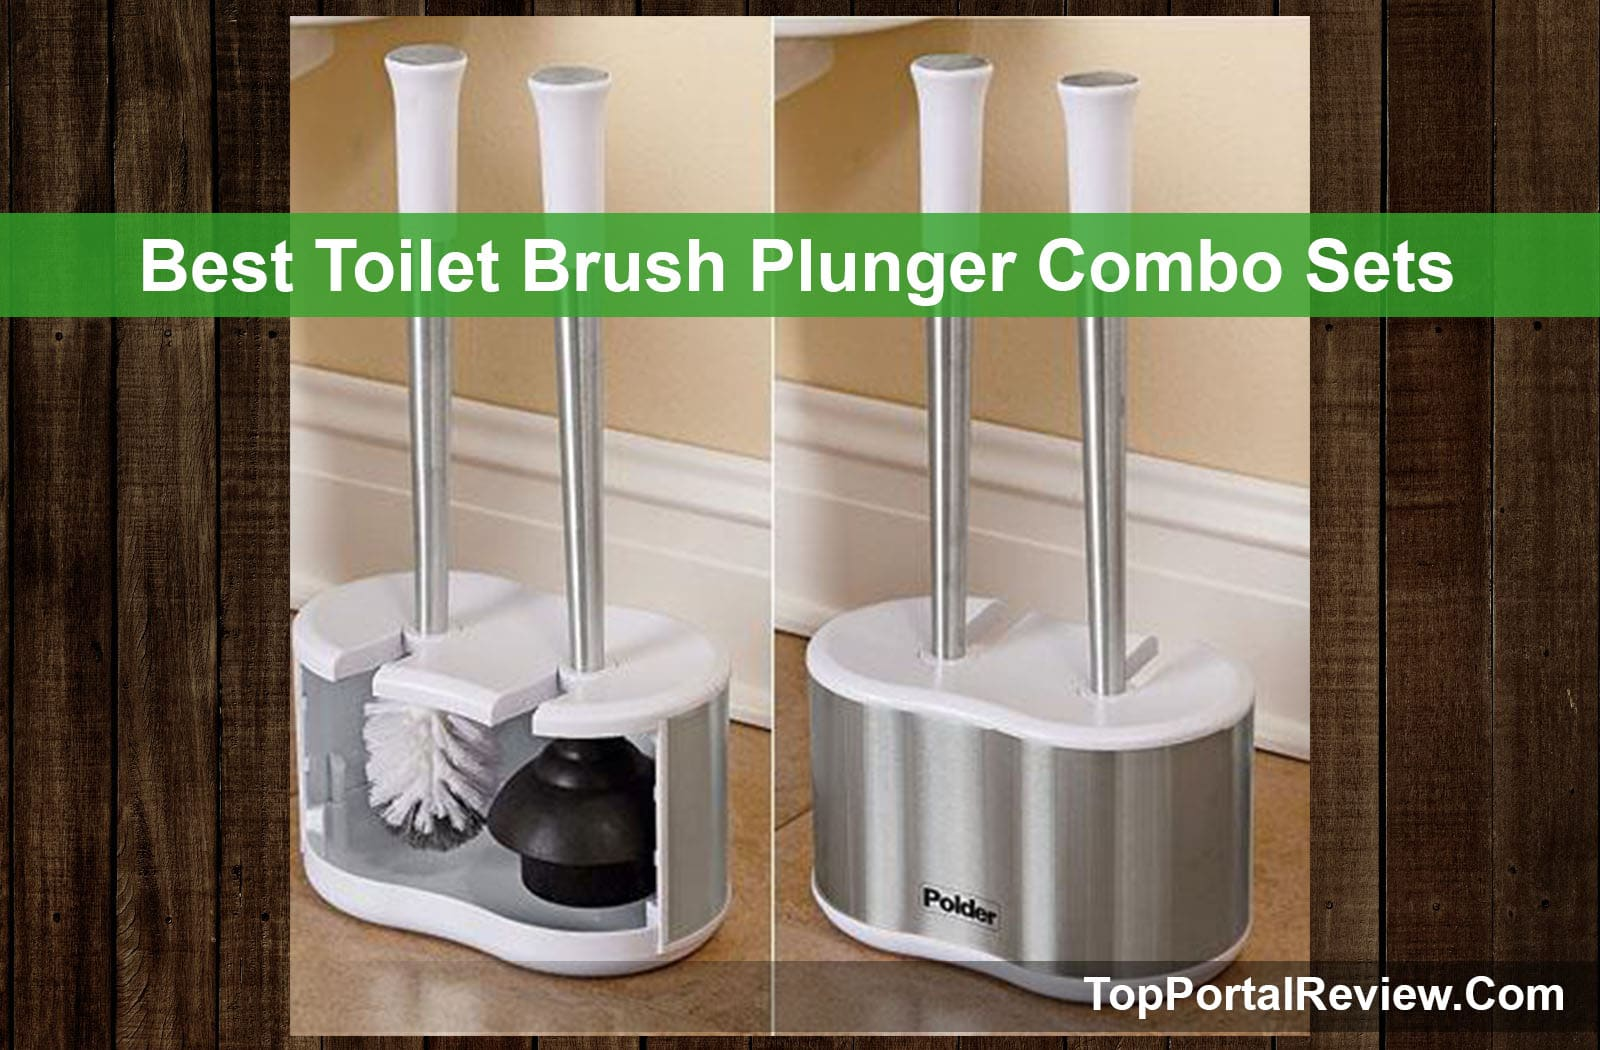 Top 5 Best Toilet Brush Plunger Combo Sets In 2019 Reviews